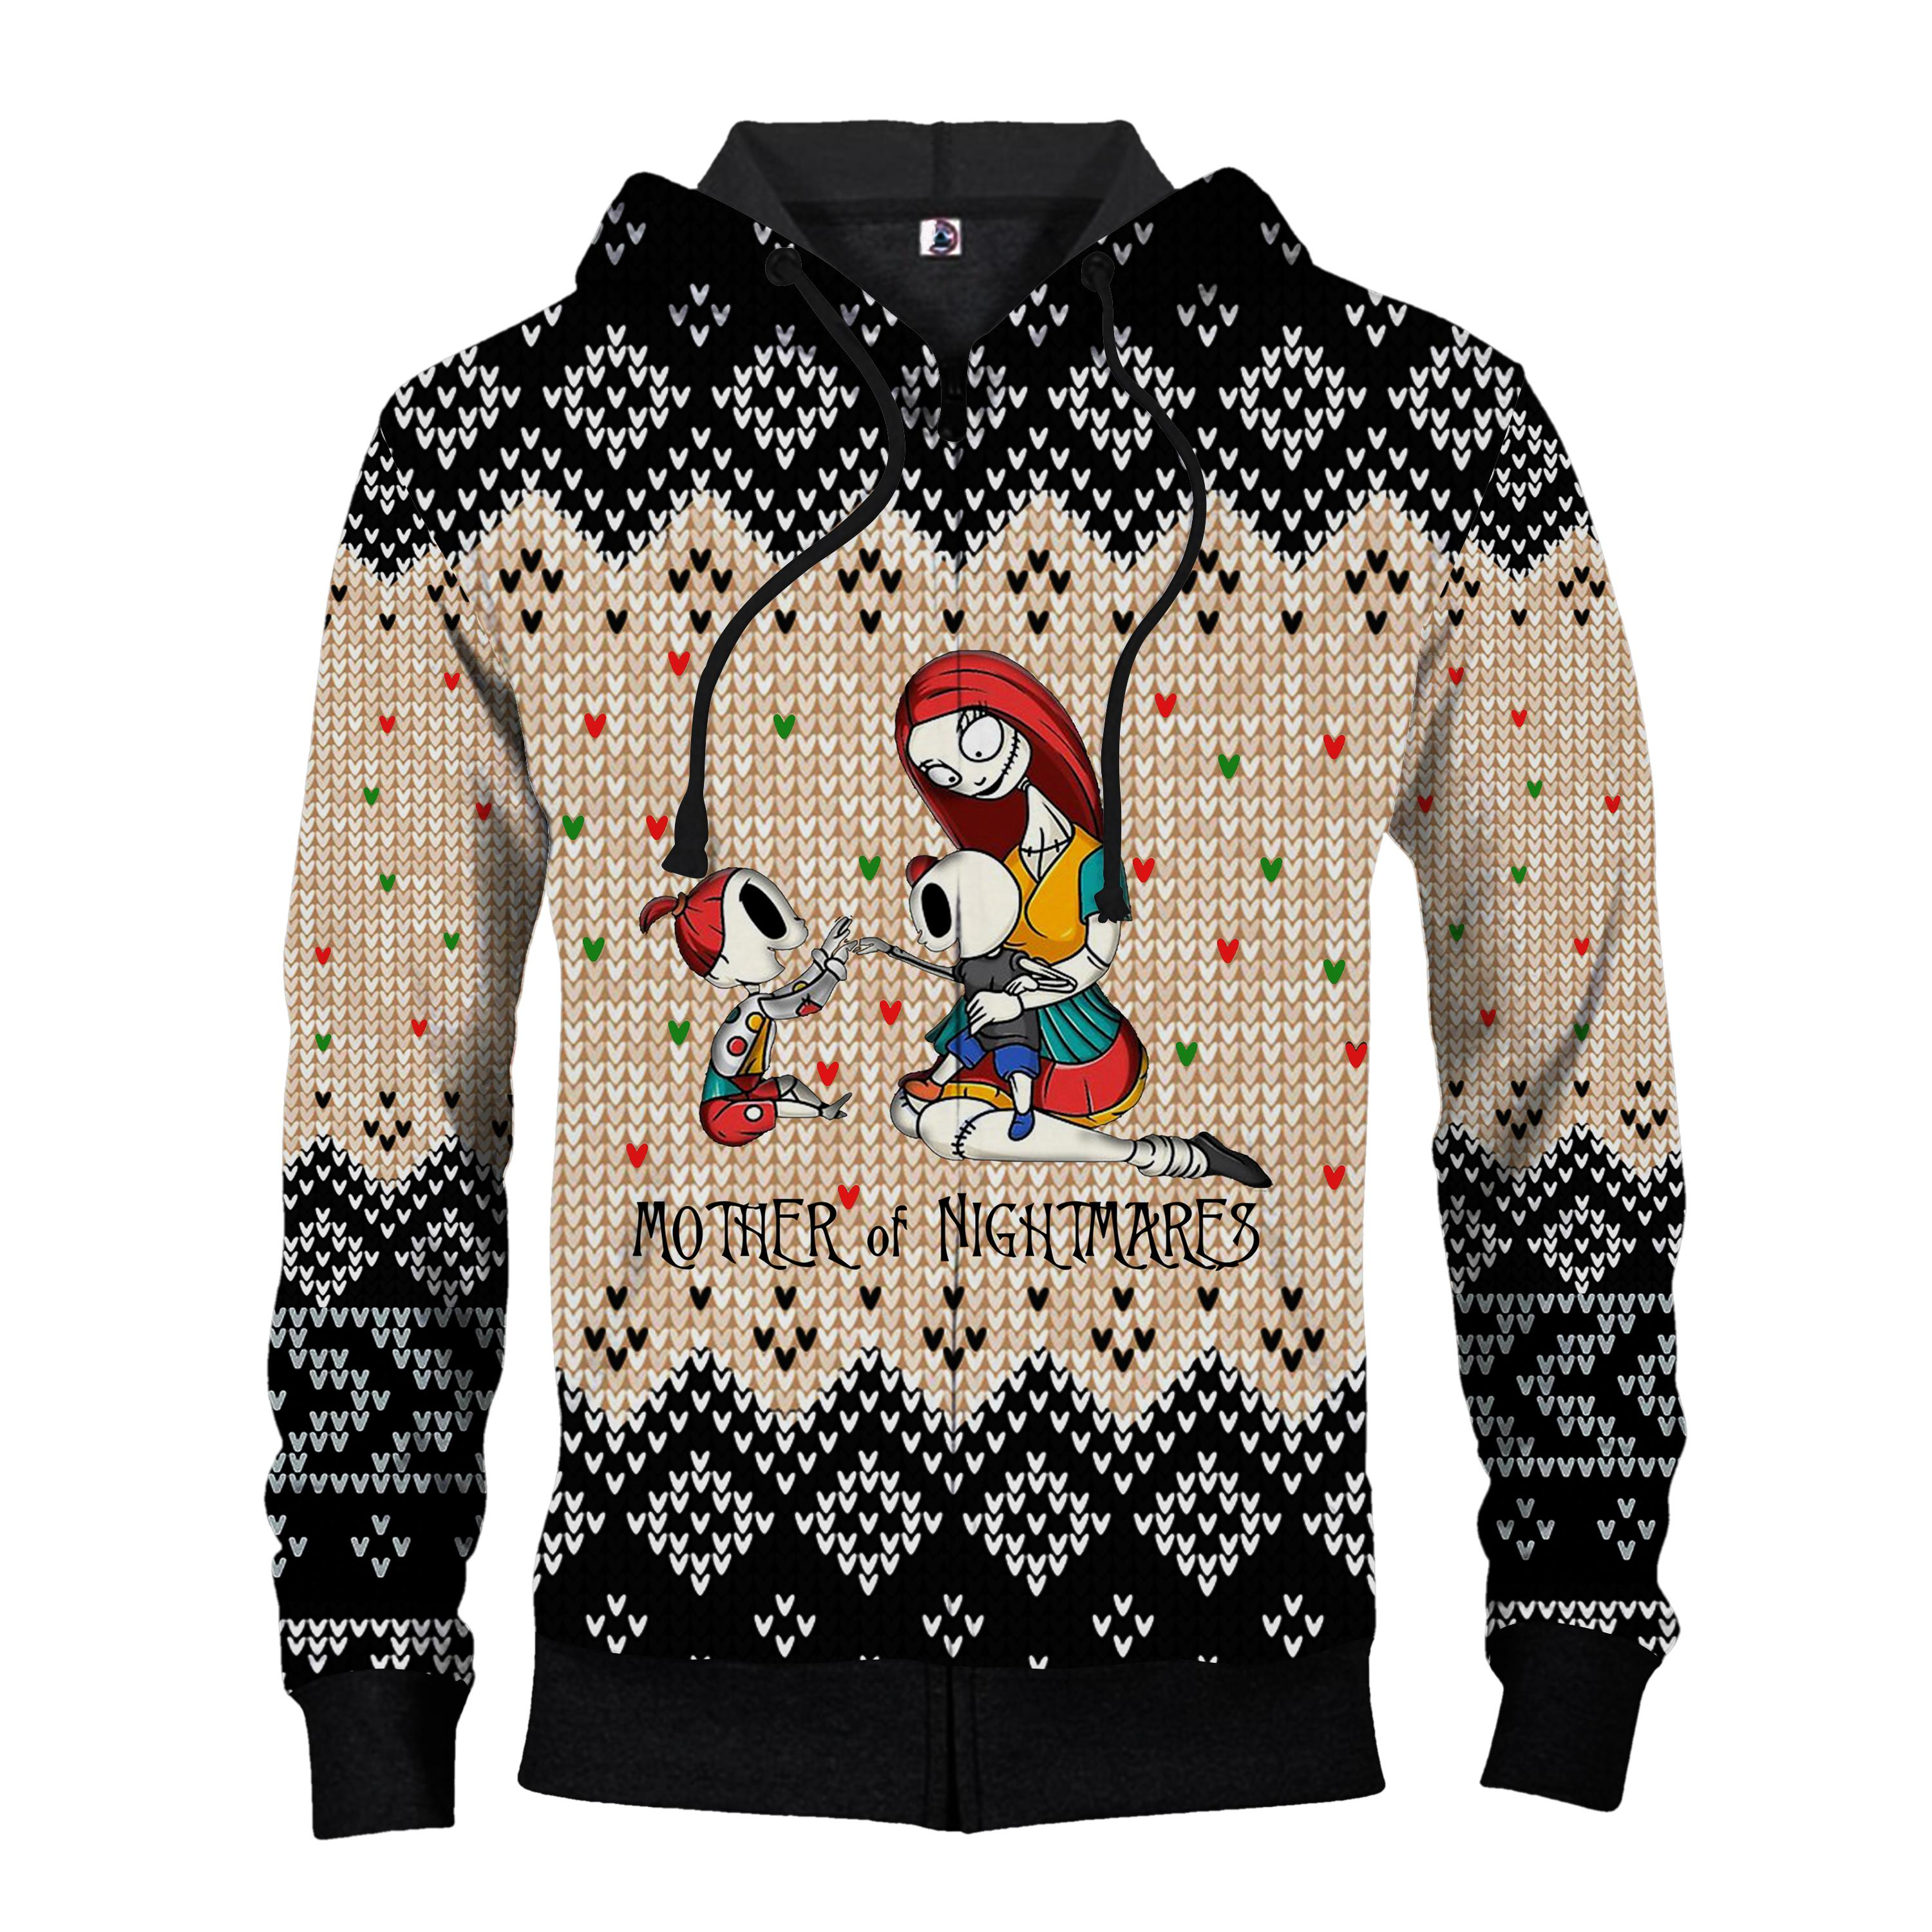 Sally mother of nightmares ugly christmas all over print zip hoodie